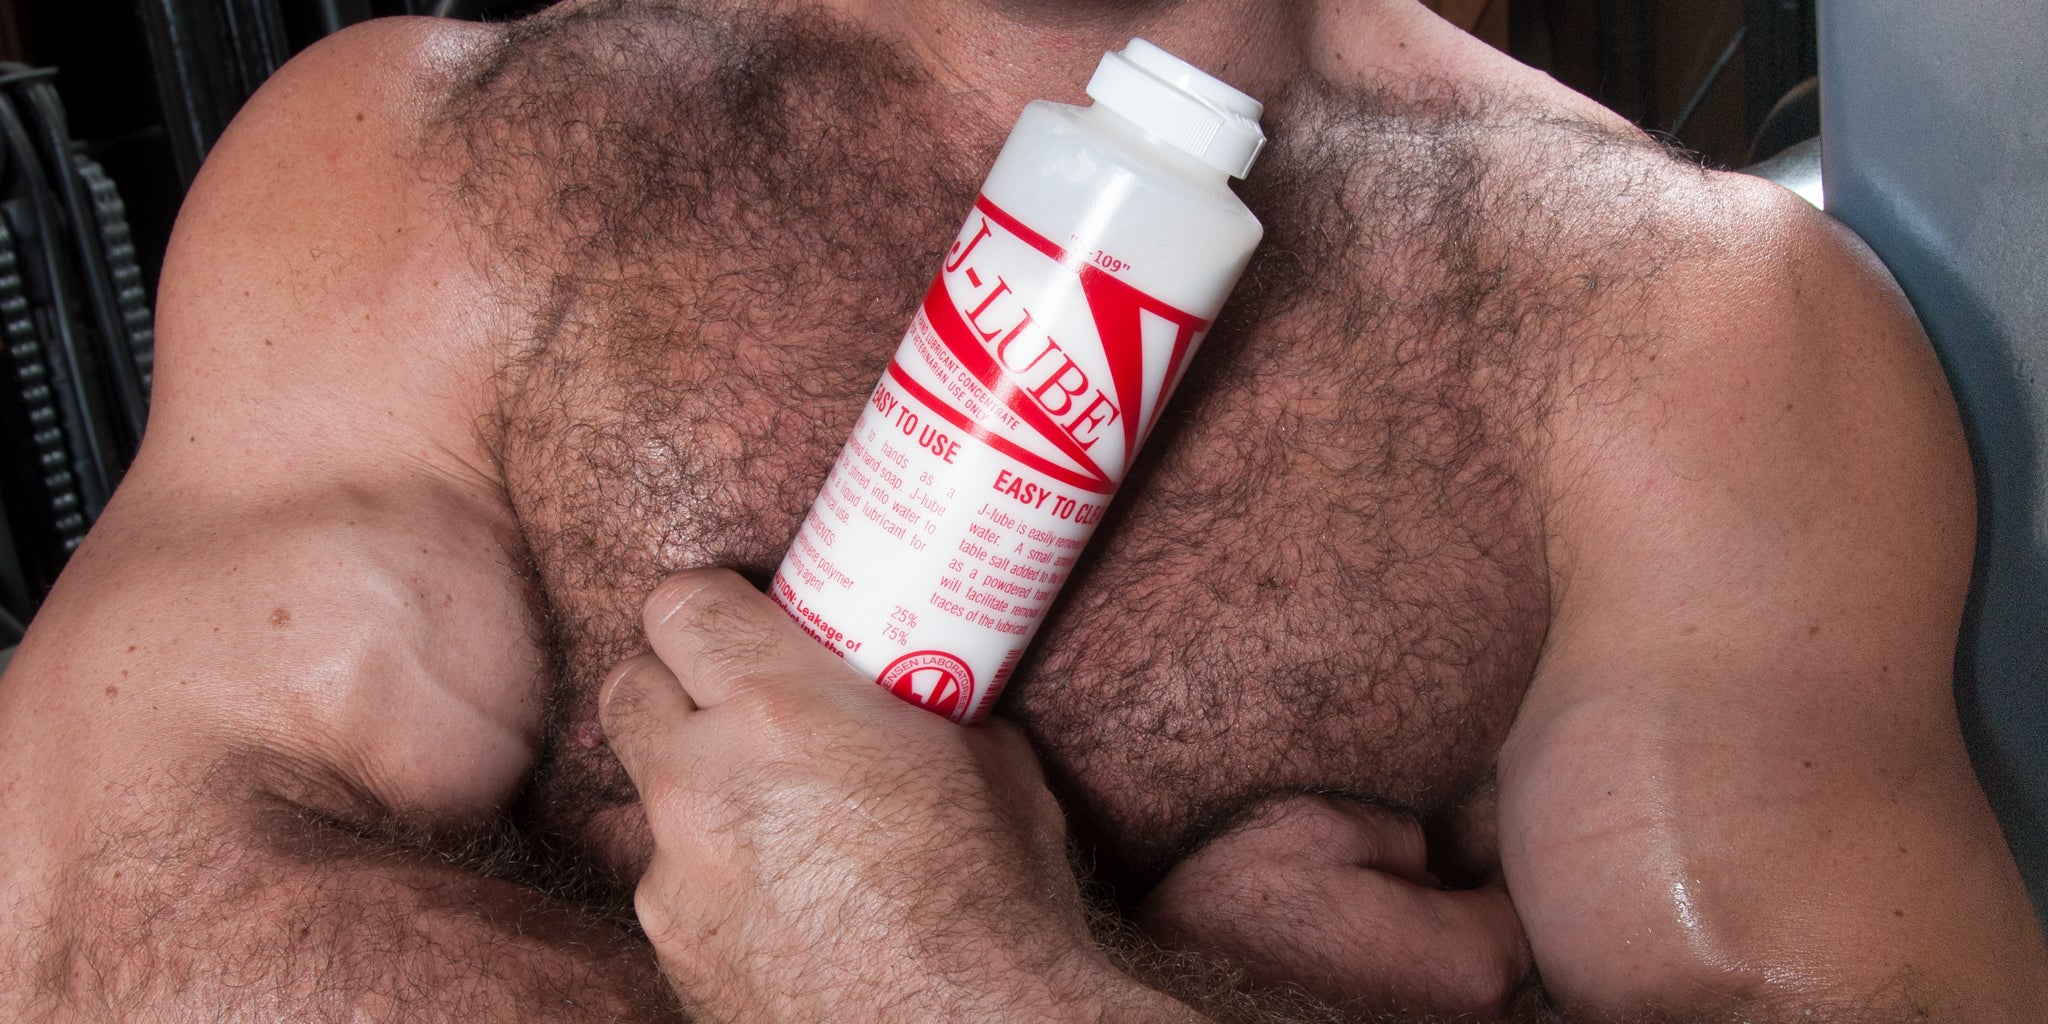 Men's Lubes & Cleaners: Personal Care Lubricants from Gun Oil, Pjur, Wicked, Swiss Navy, J-Lube, and more.